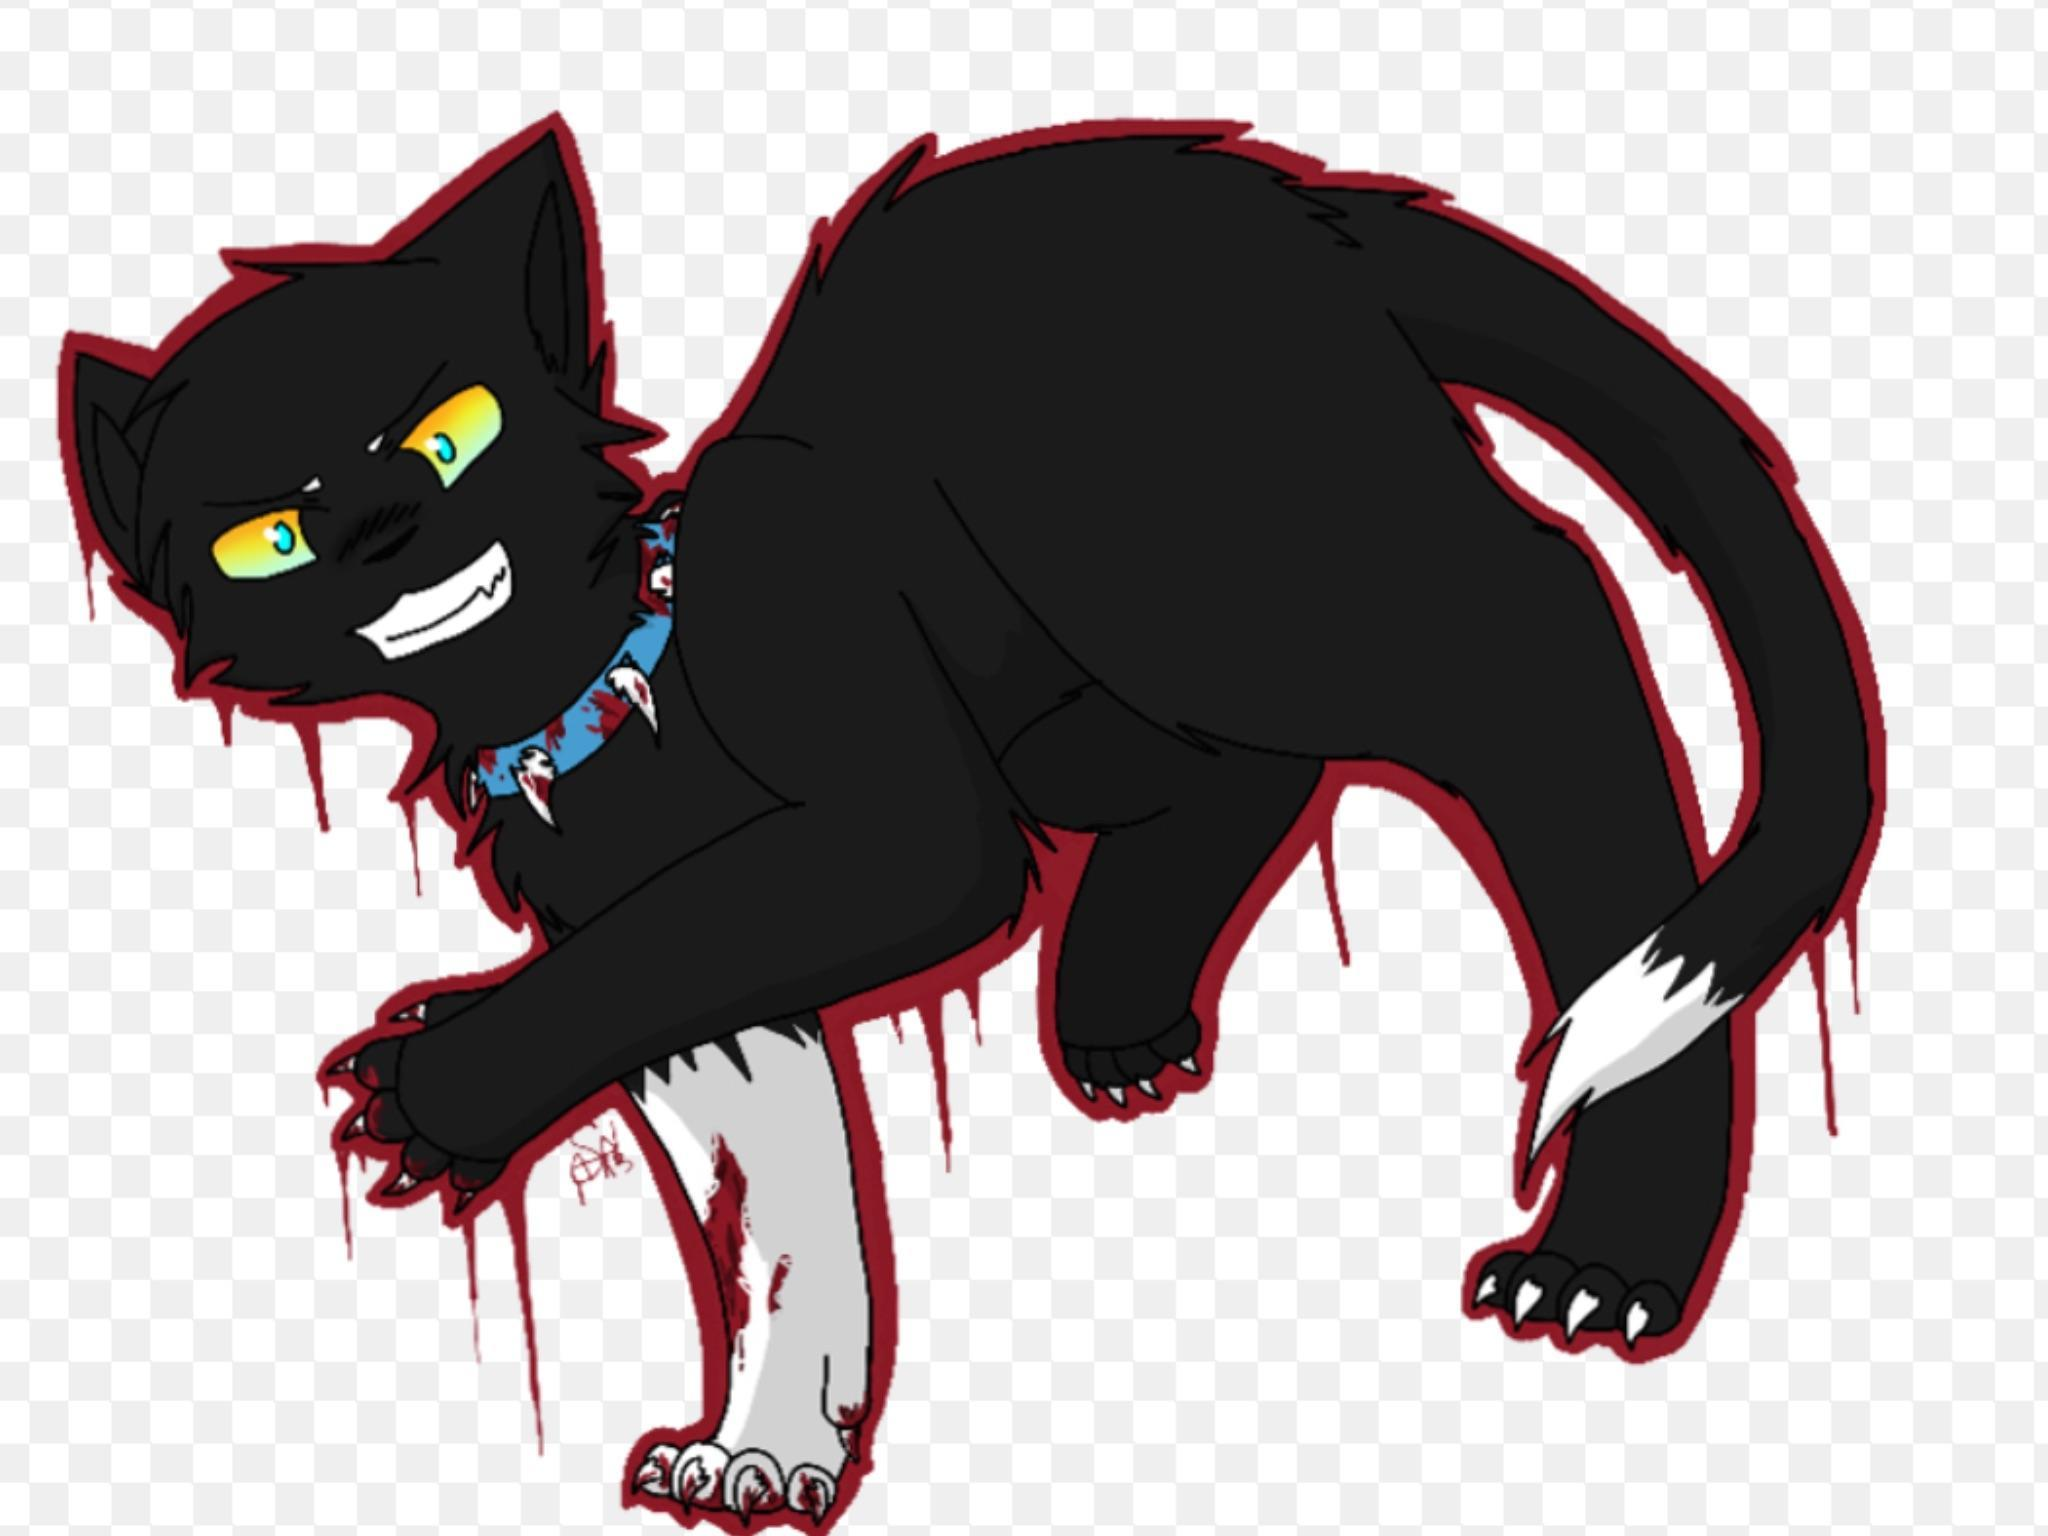 What do you think of Scourge the cat?